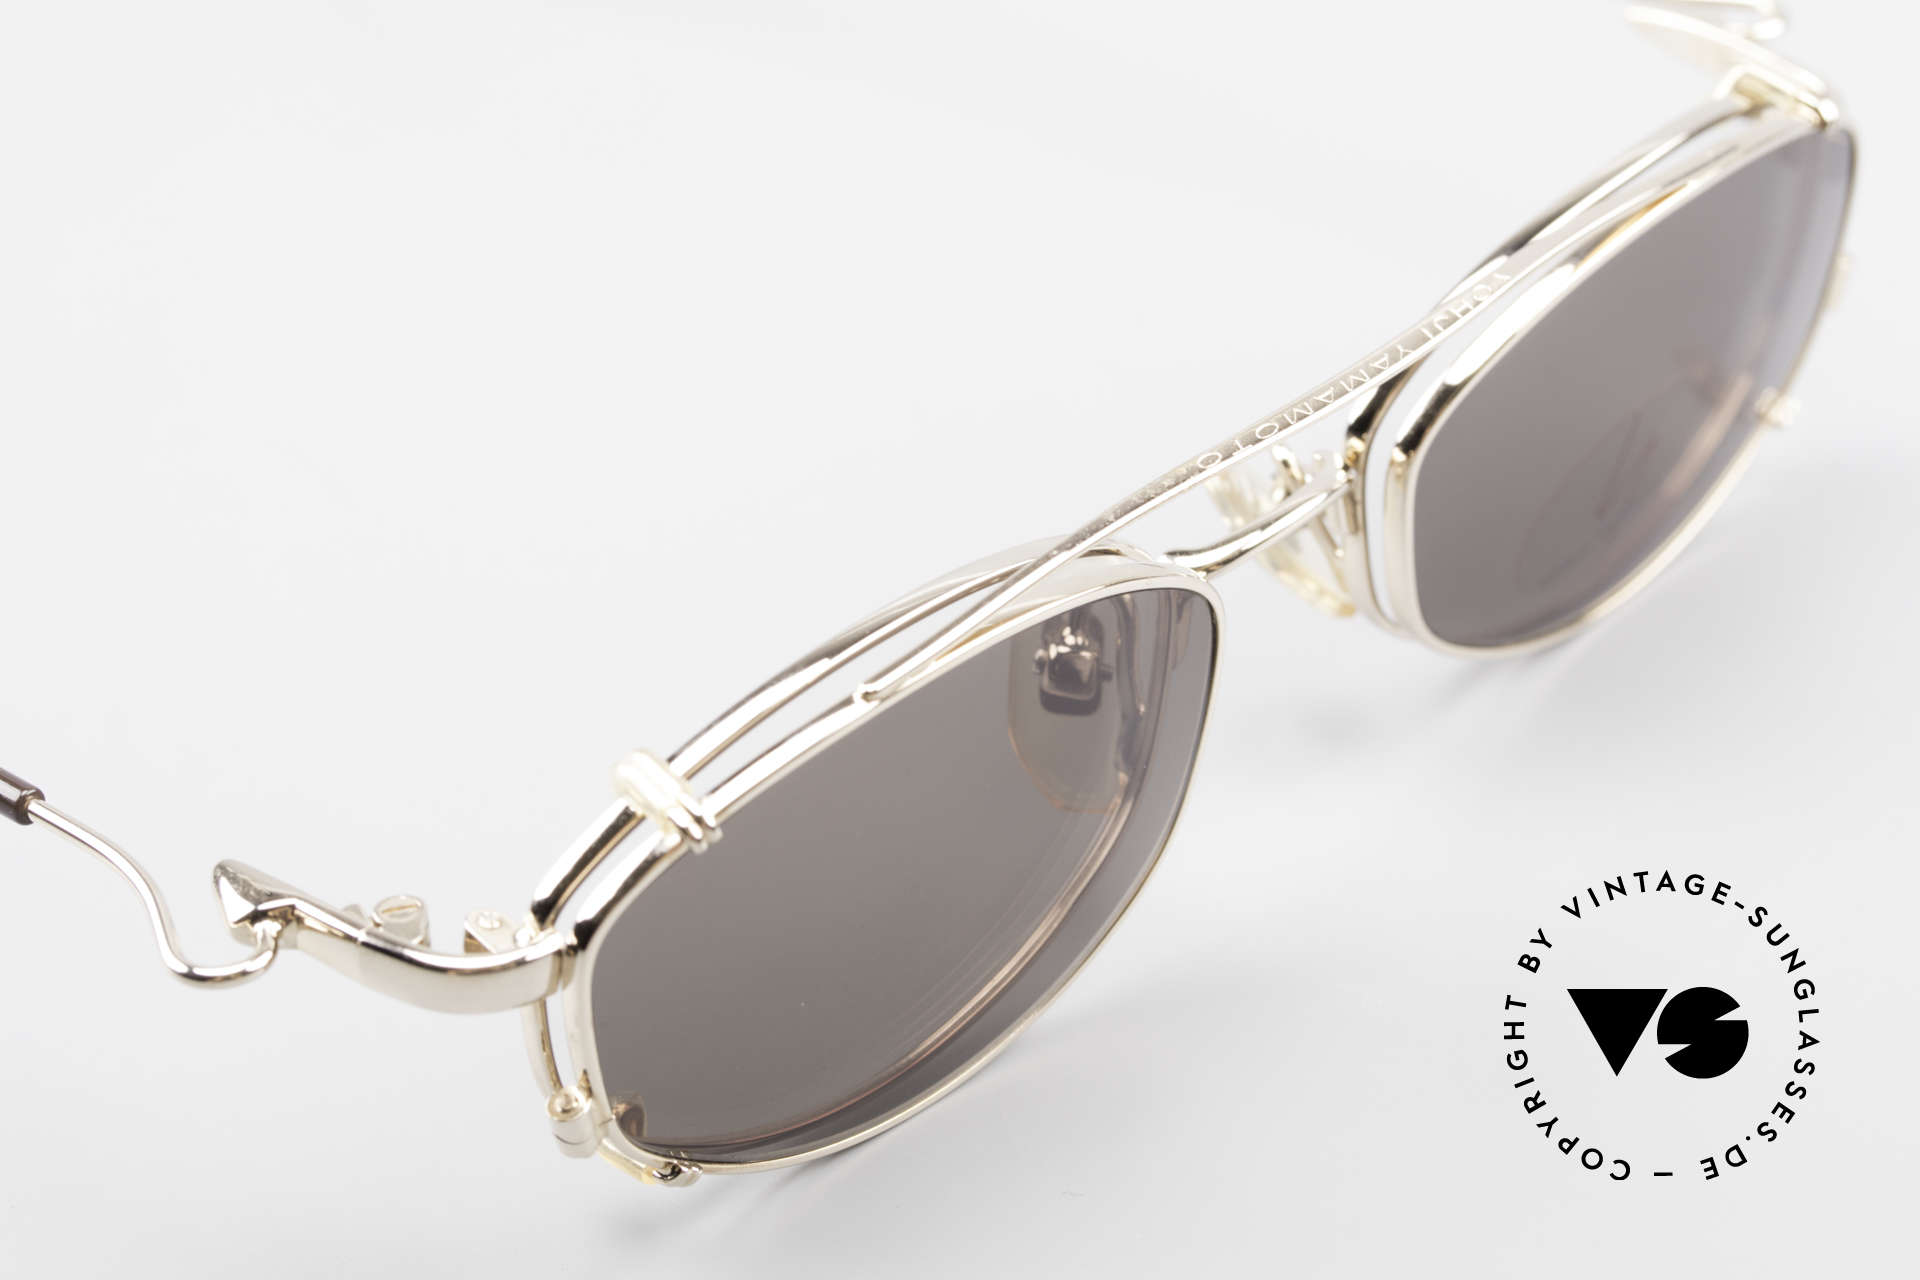 Yohji Yamamoto 51-7211 Gold Plated Frame With Clip On, never worn: like all our quality designer (sun)glasses, Made for Men and Women